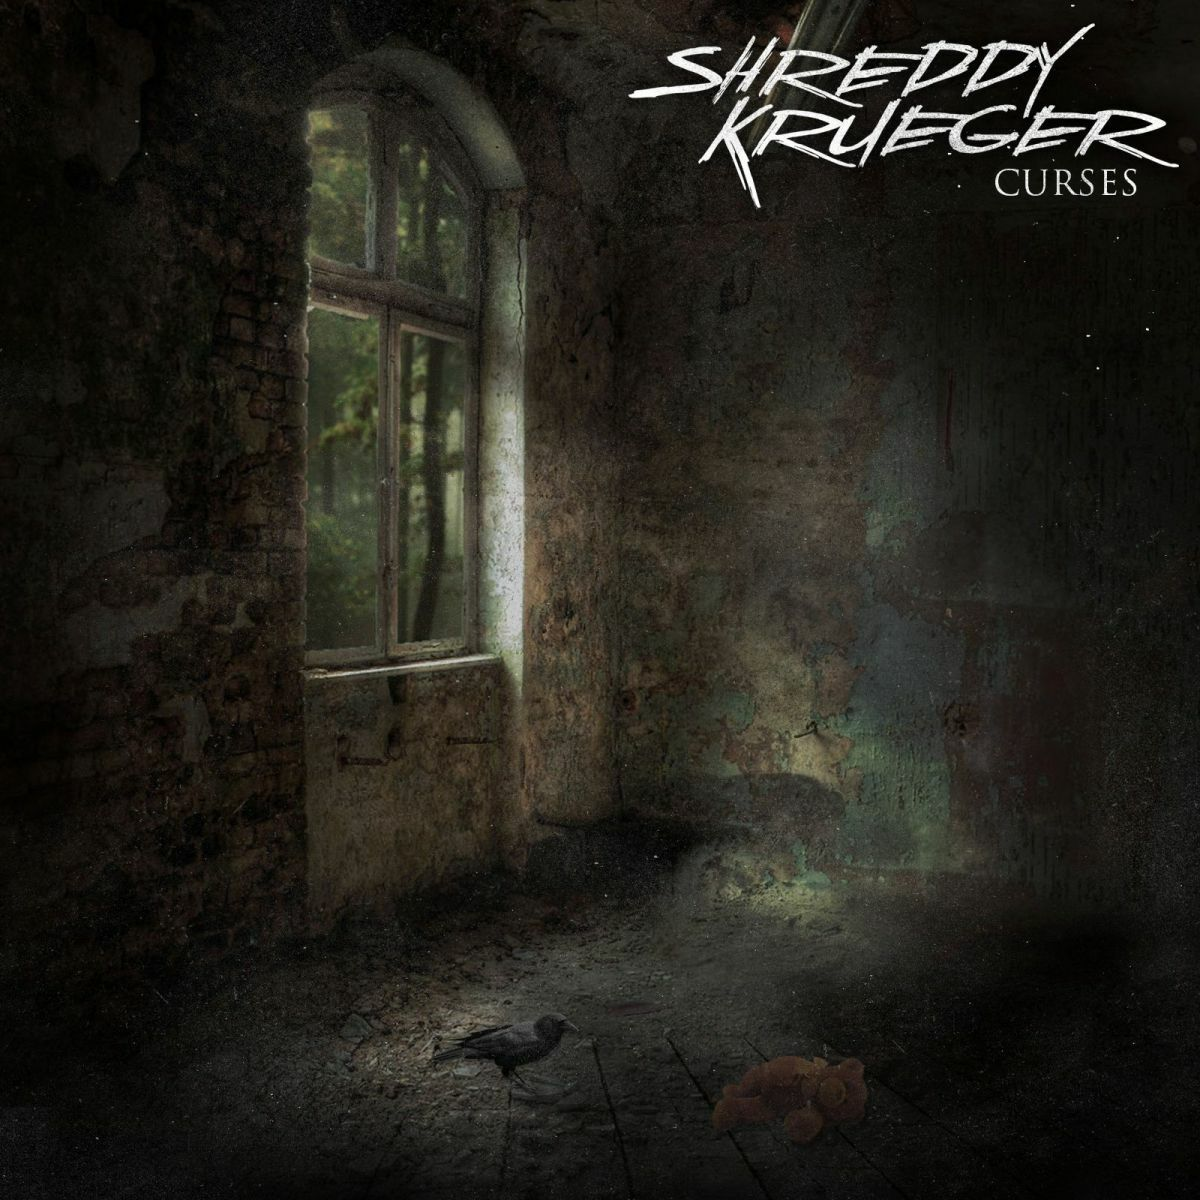 Shreddy Krueger - Curses (2012)